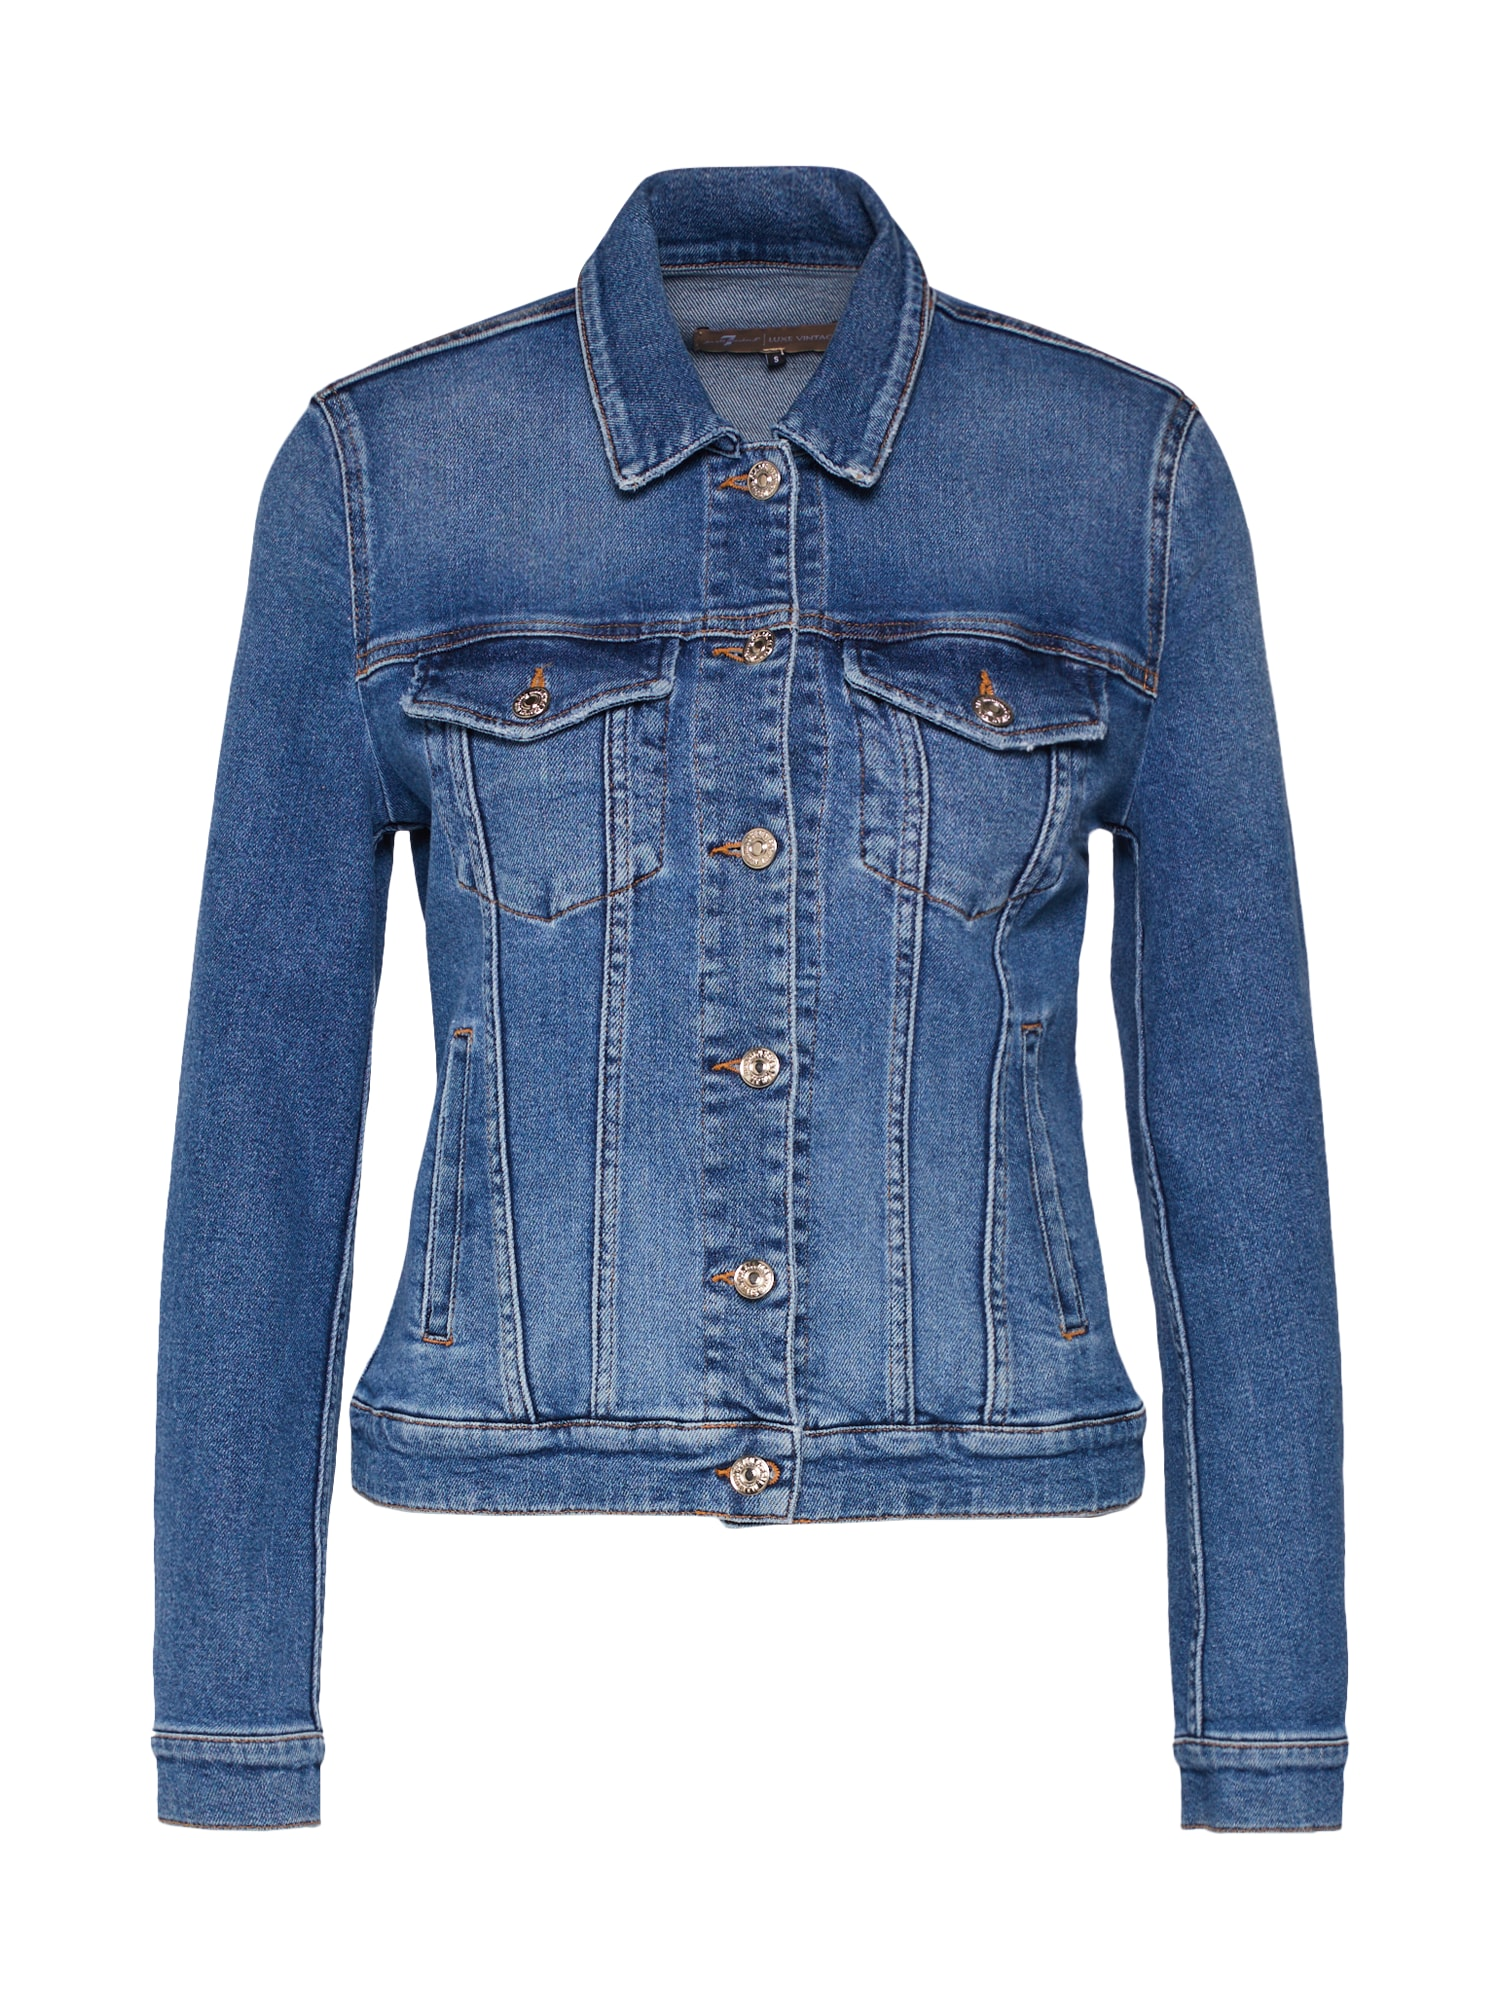 7 for all mankind Demisezoninė striukė 'MODERN TRUCKER LUXE VINTAGE' mėlyna